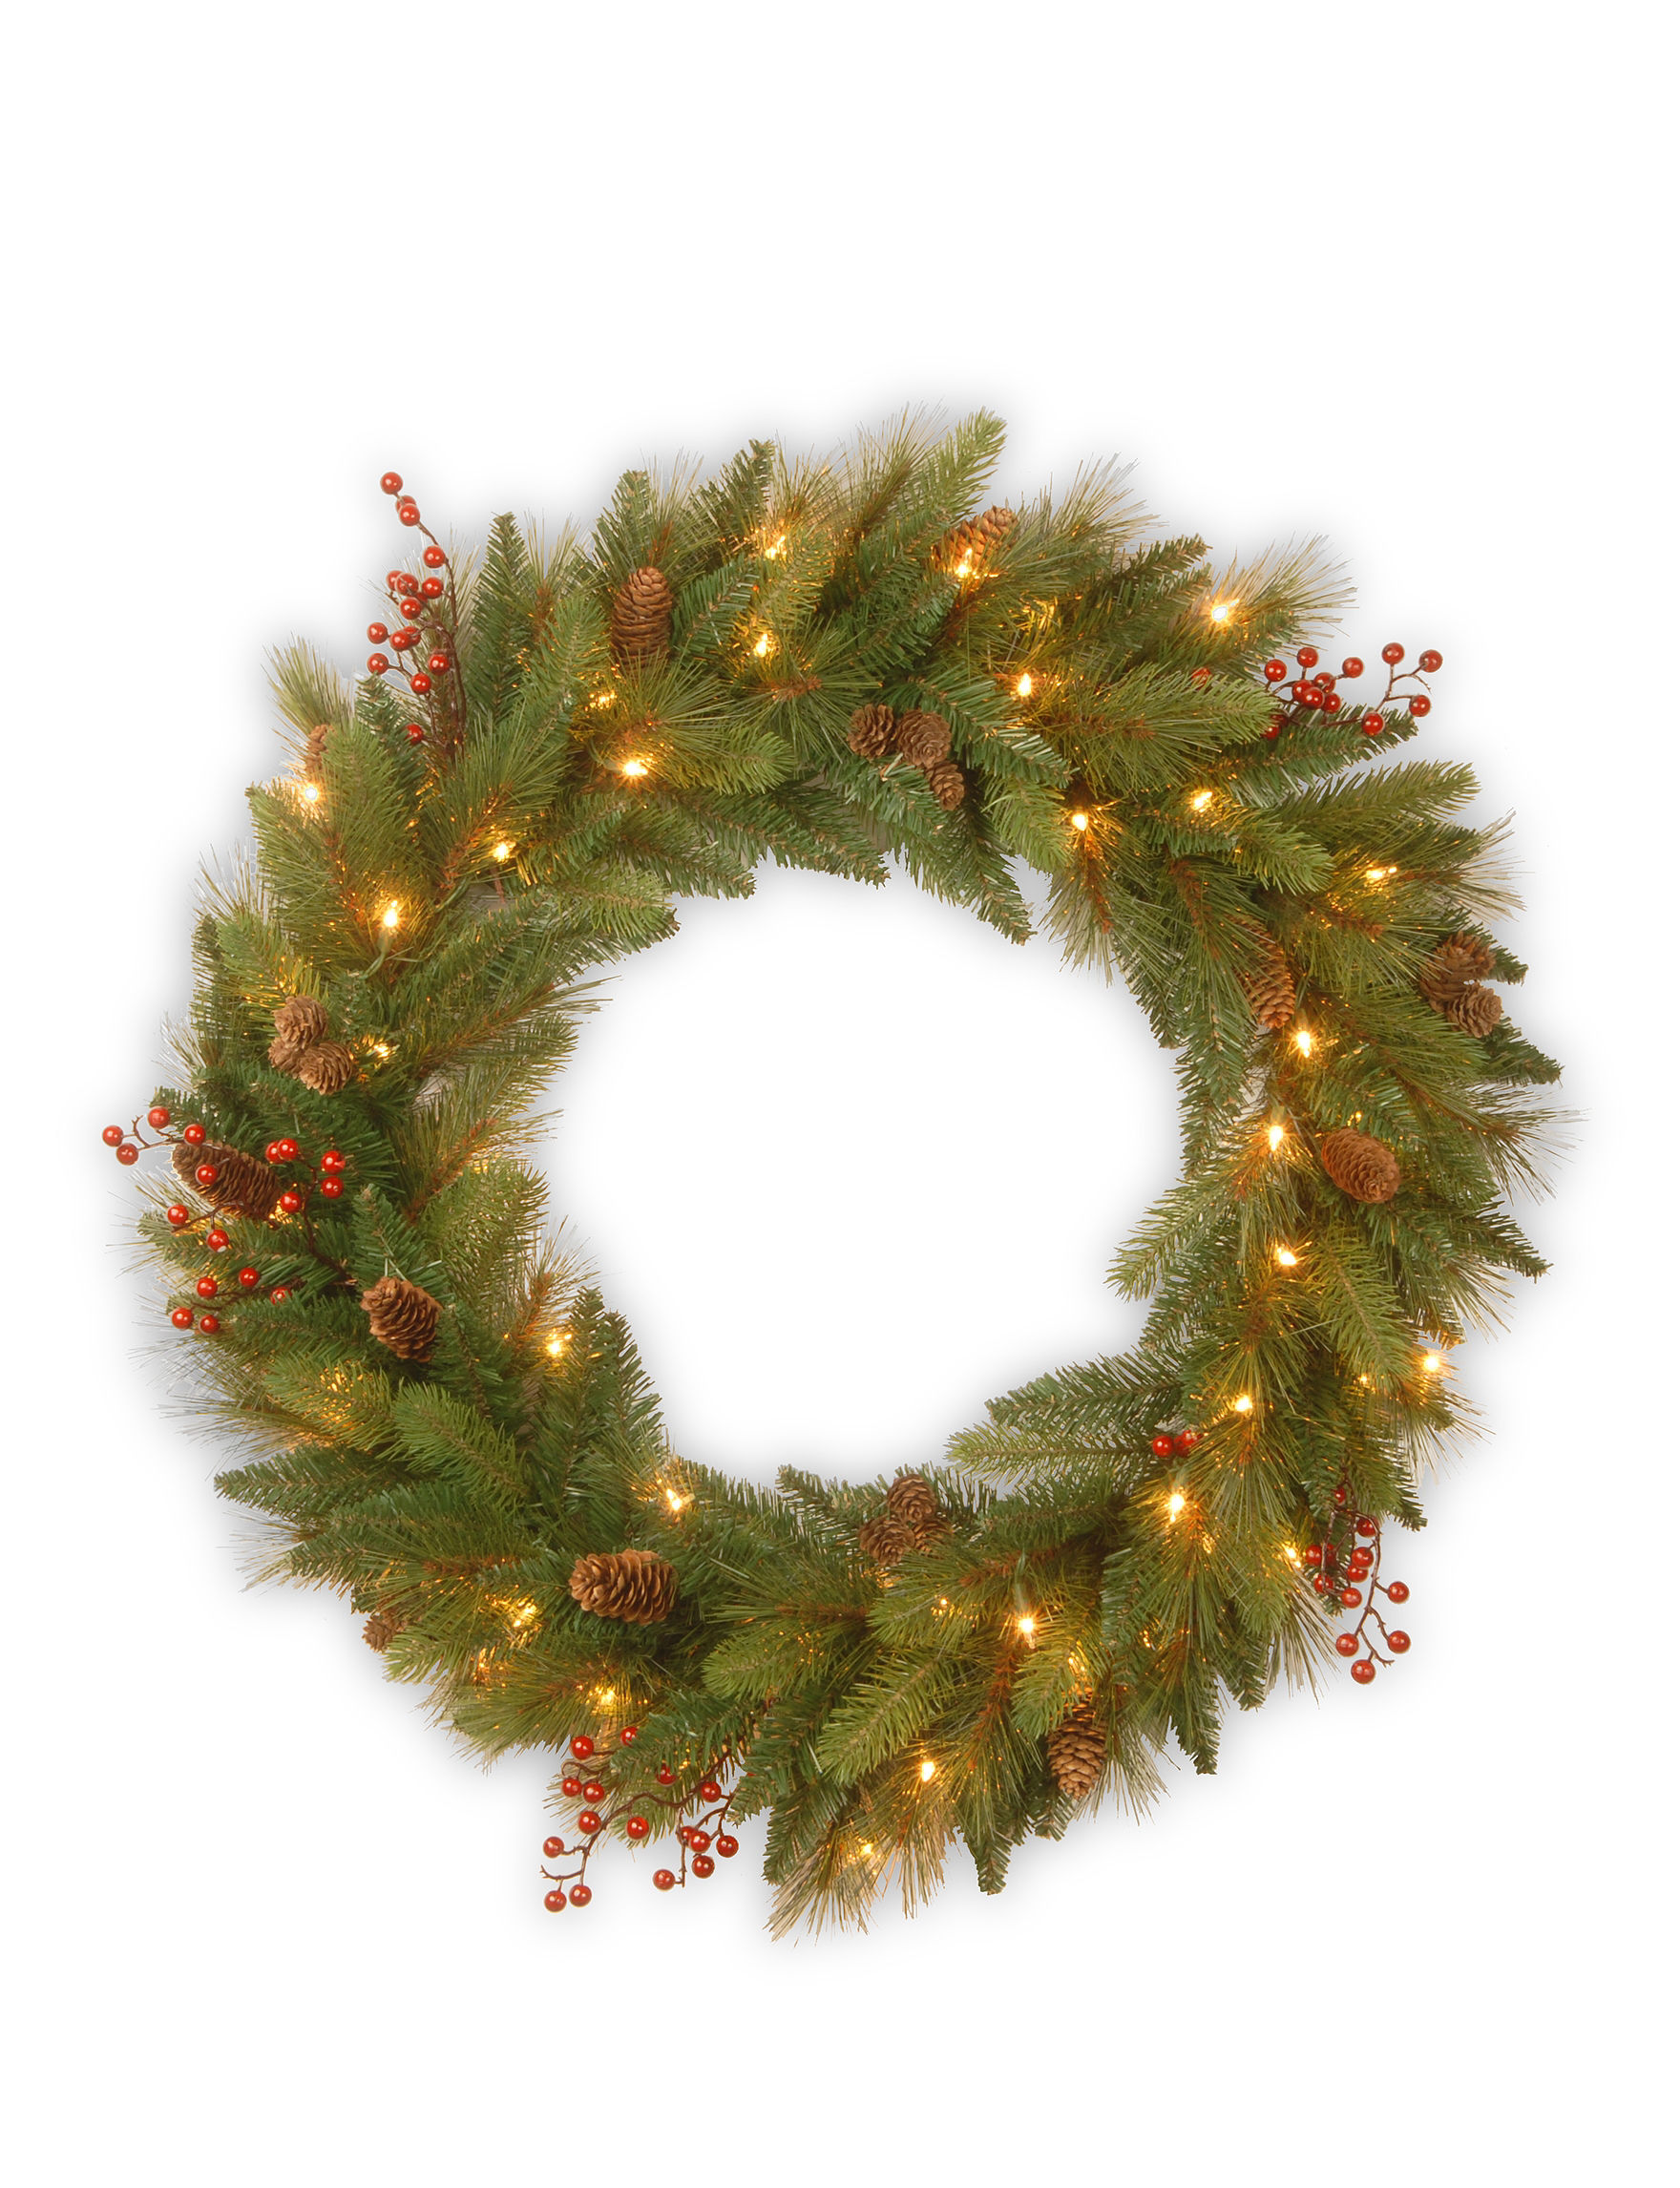 National Tree Company Green Wreaths & Garland Holiday Decor